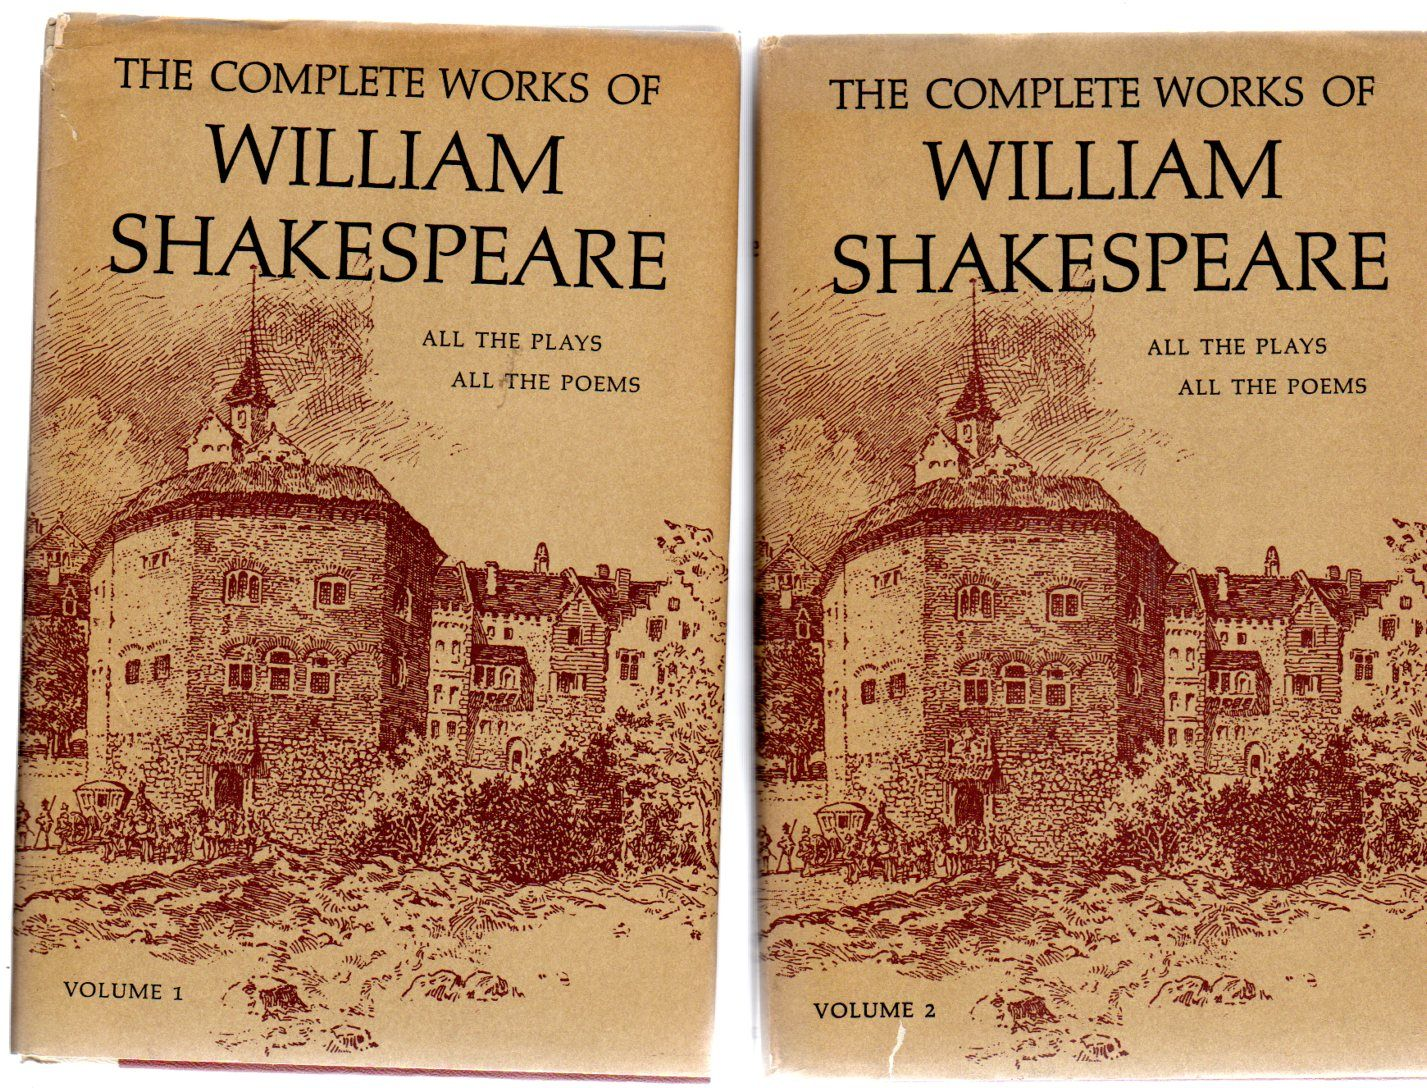 an analysis of the works of william shakespeare Considered the greatest english-speaking writer in history and known as england's national poet, william shakespeare (1564-1616) has had more theatrical works performed than any other playwright.